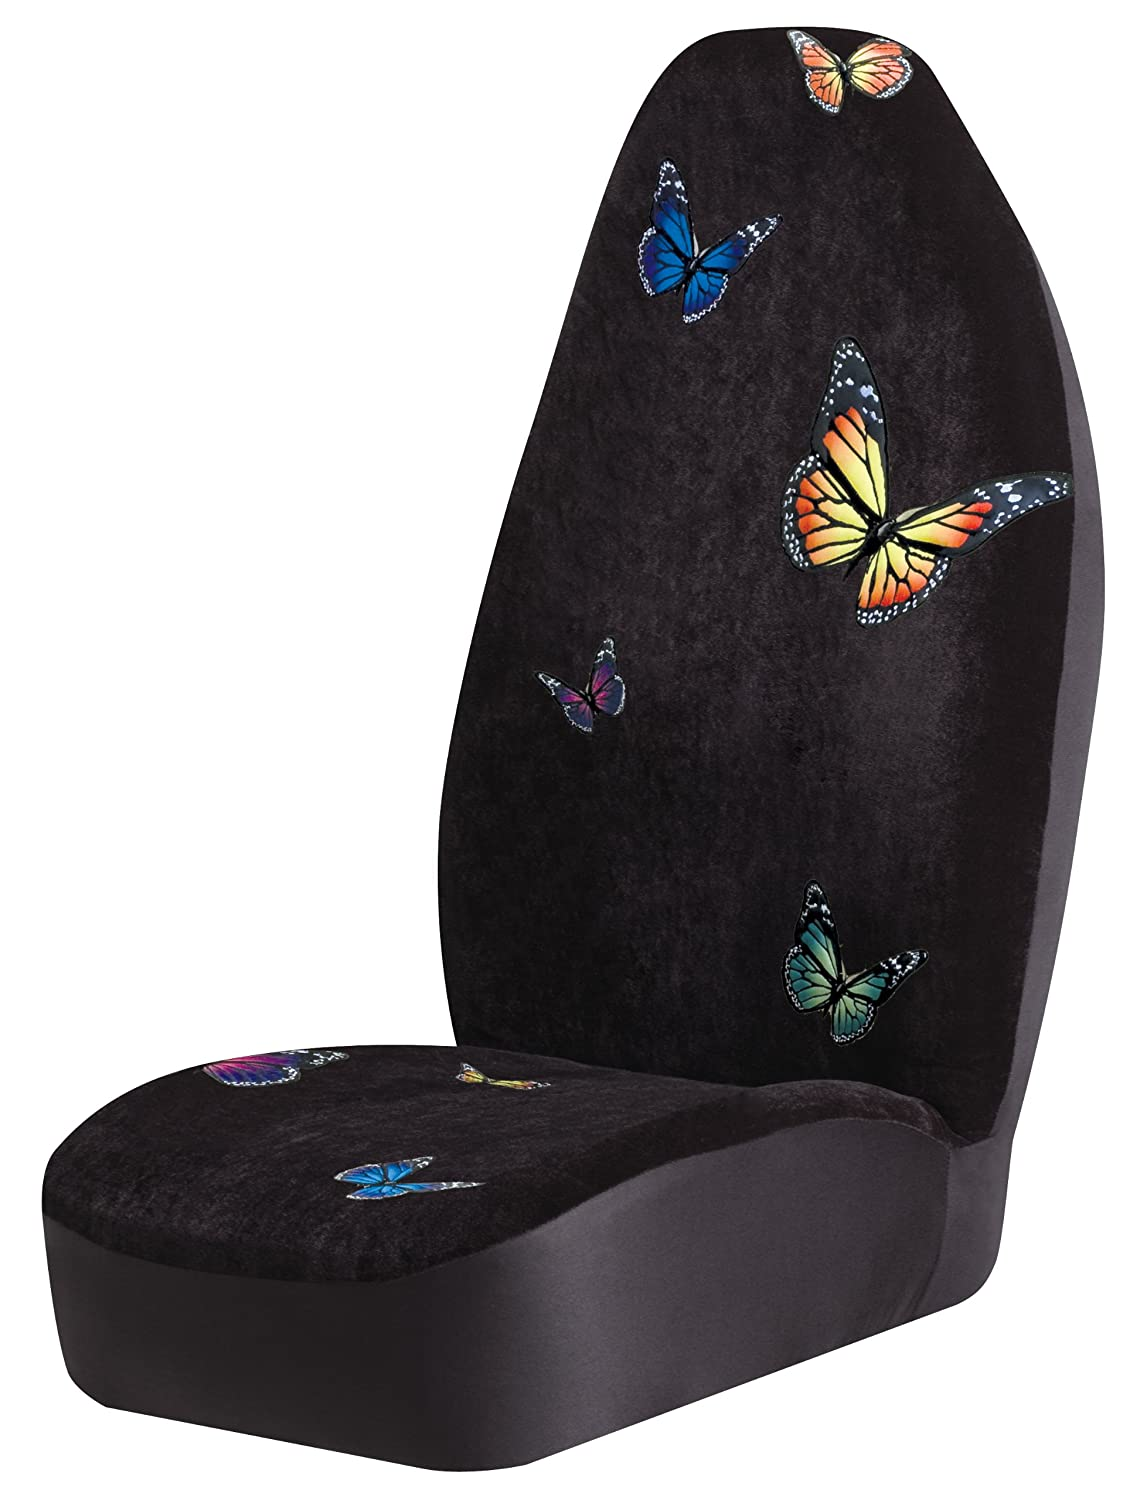 monarch butterfly car seat covers